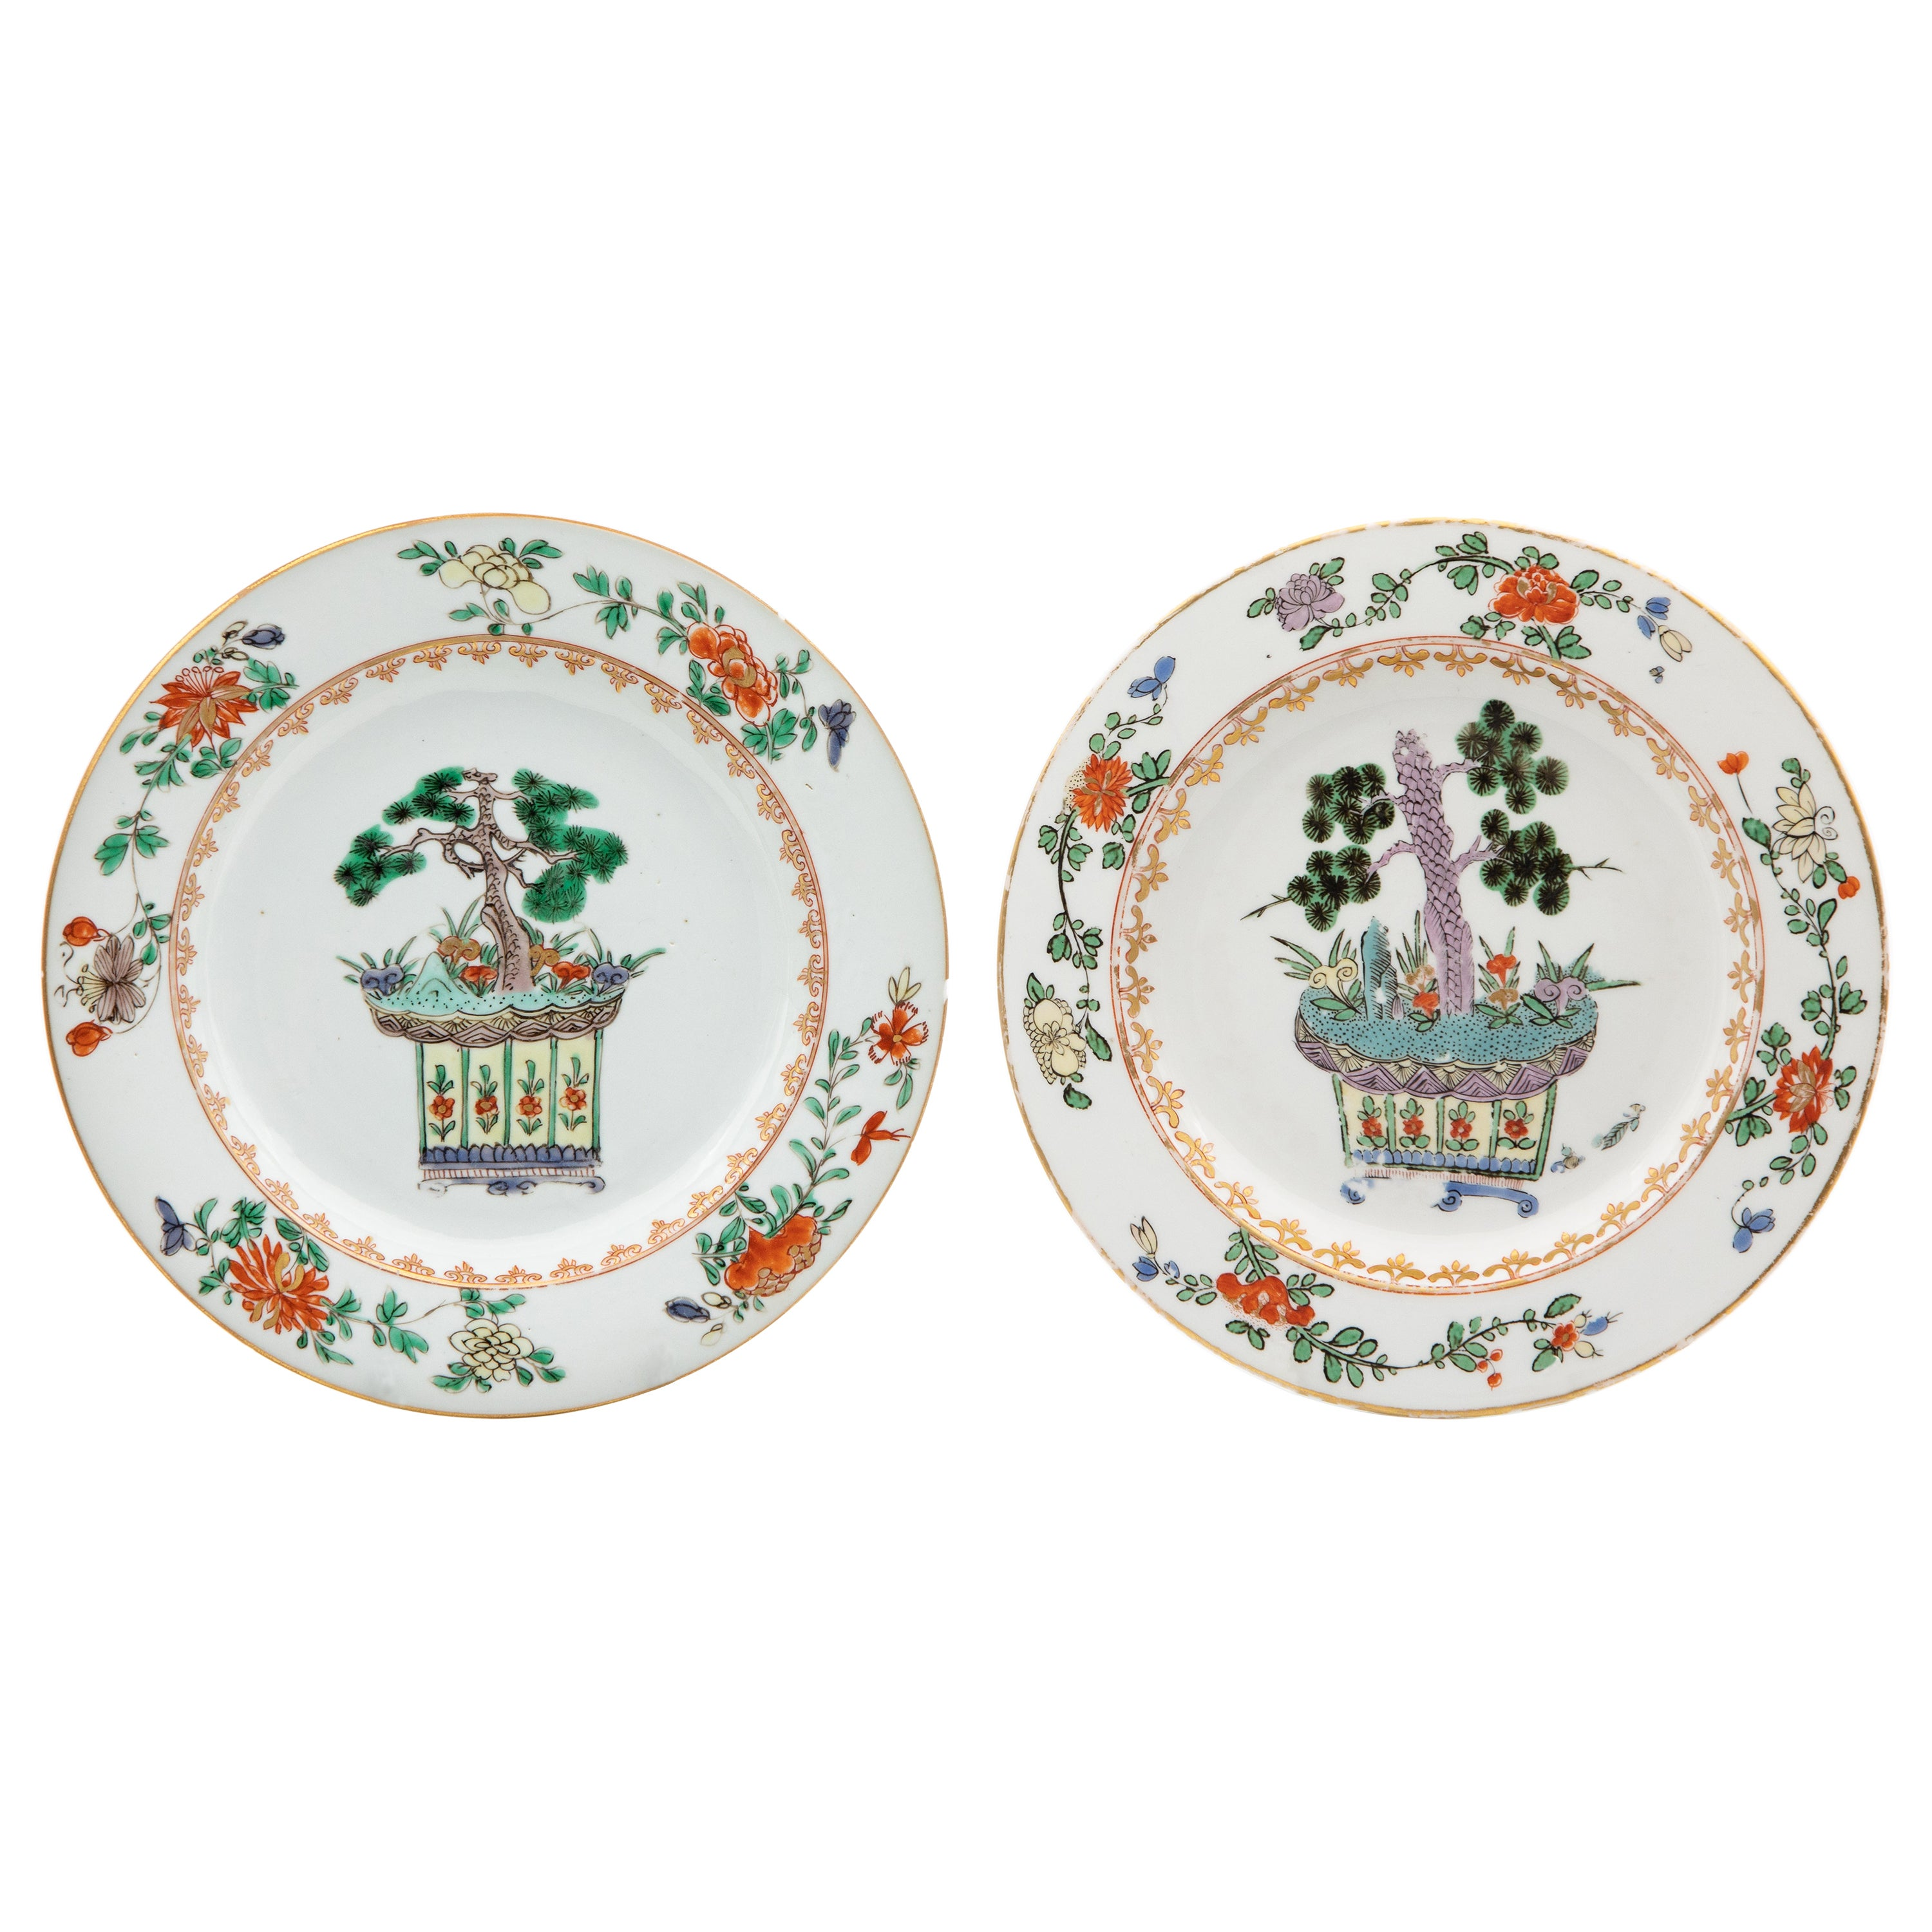 Pair of 18th Century Chinese & Meissen Famille Verte Porcelain Plates